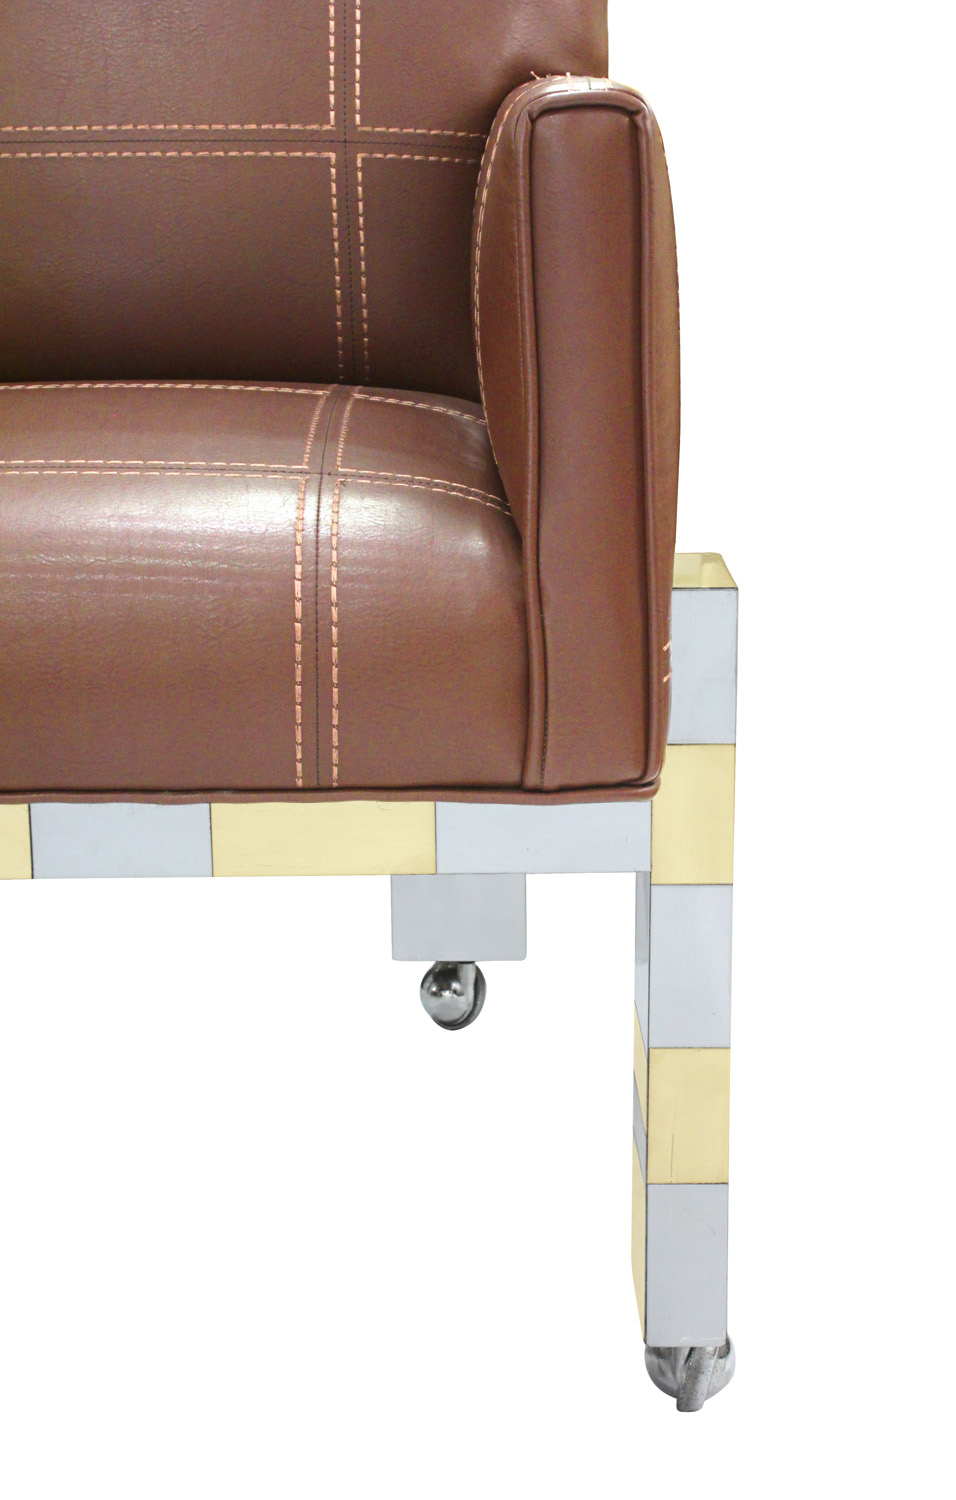 Evans 120 brass+chrome Cityscape armchairs24 detail5 hires.jpg